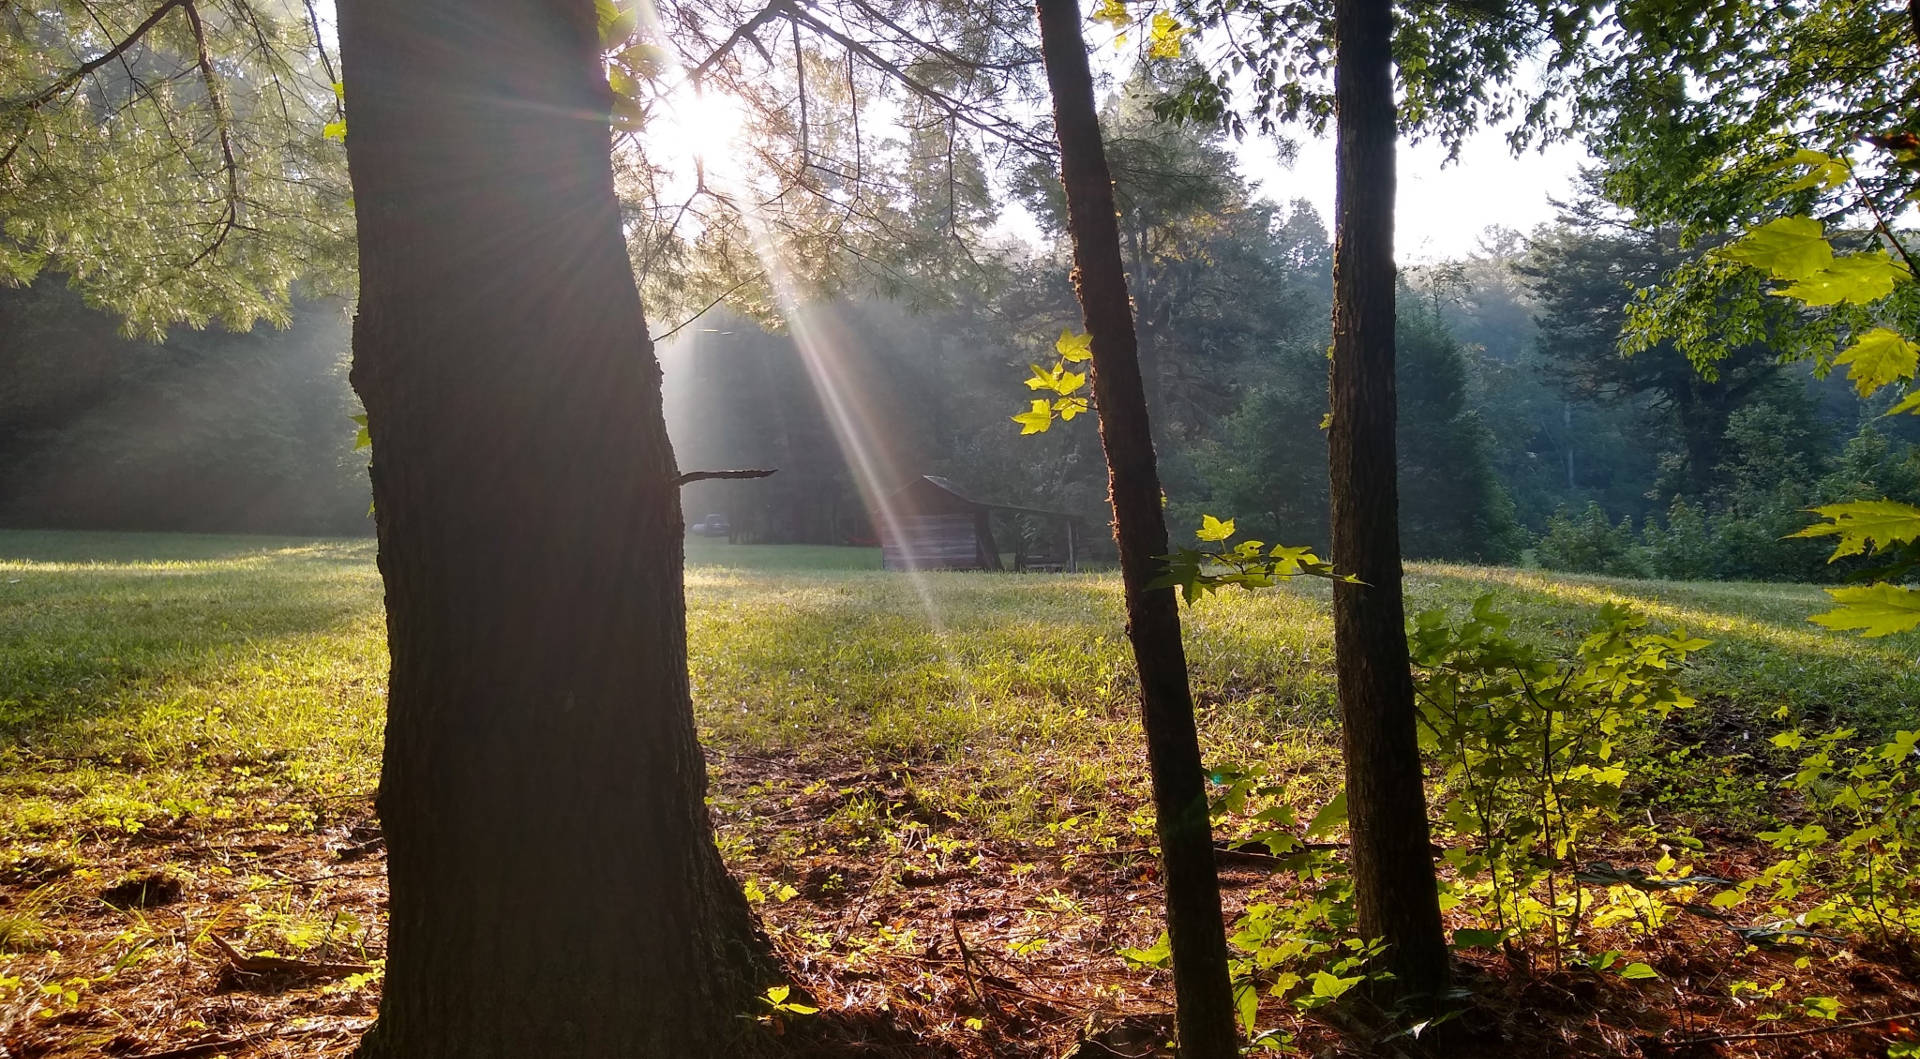 Morning light shining through trees across grassy clearning in forest.